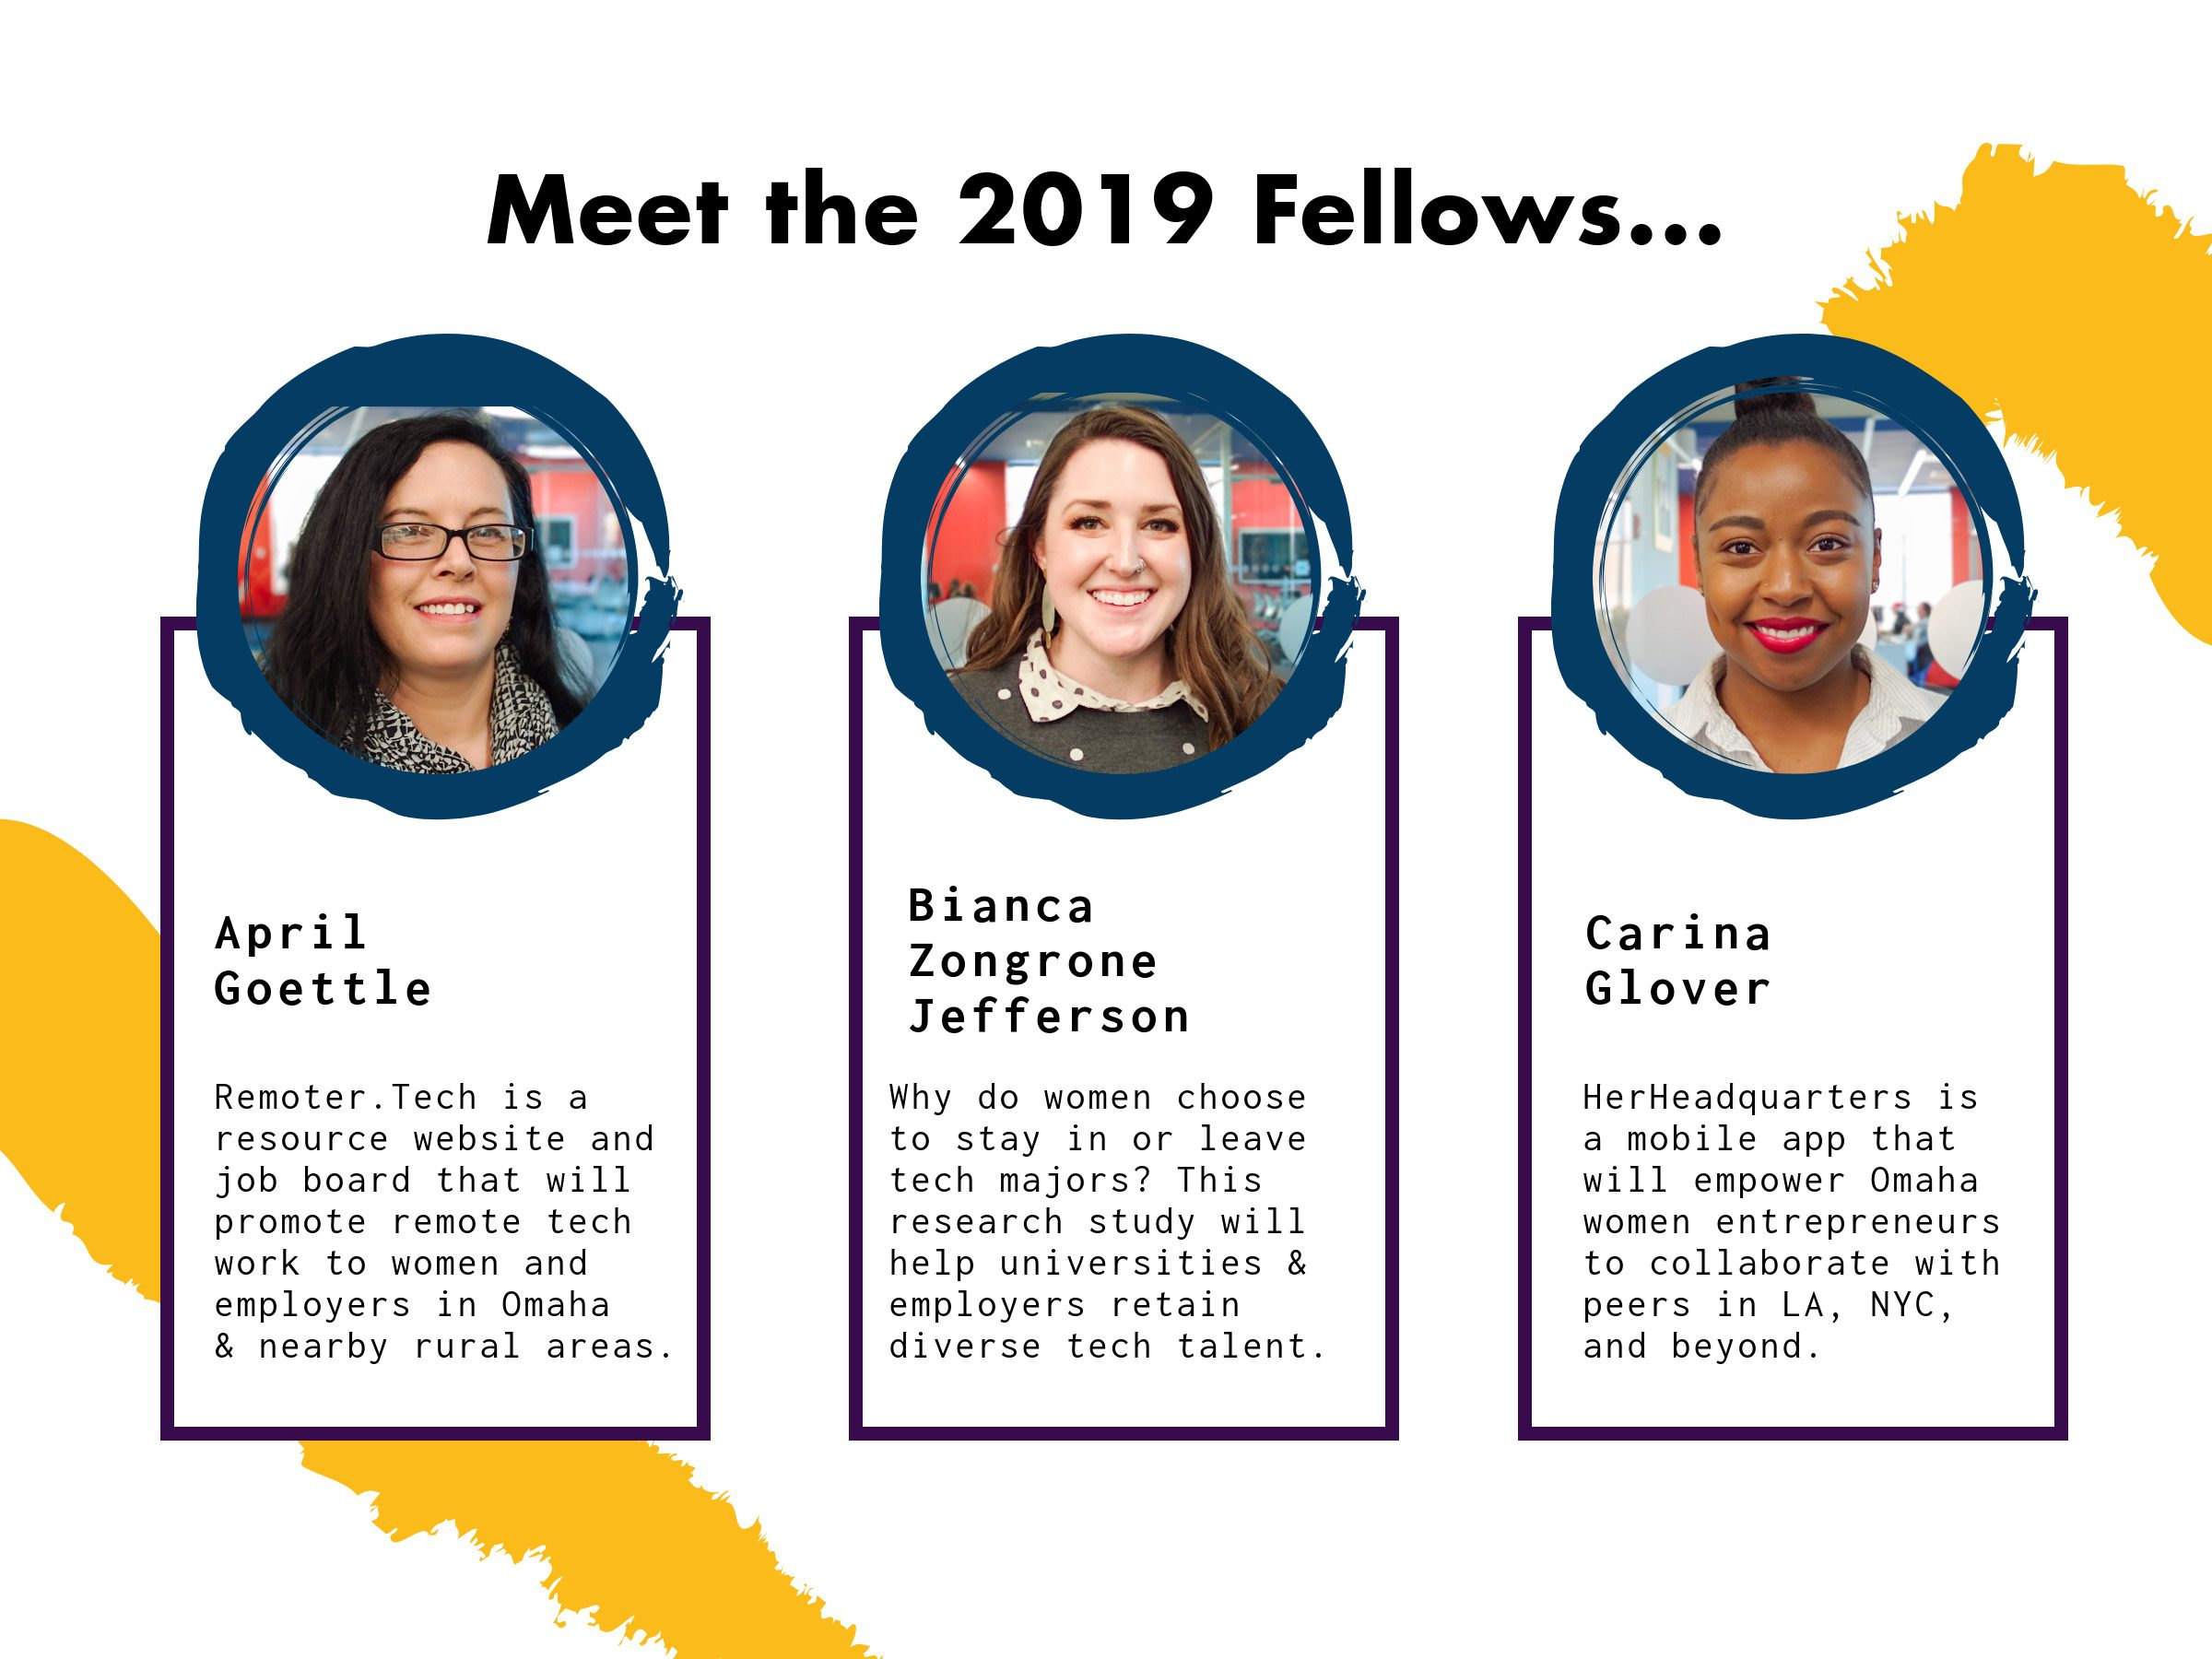 Meet the 2019 Fellows